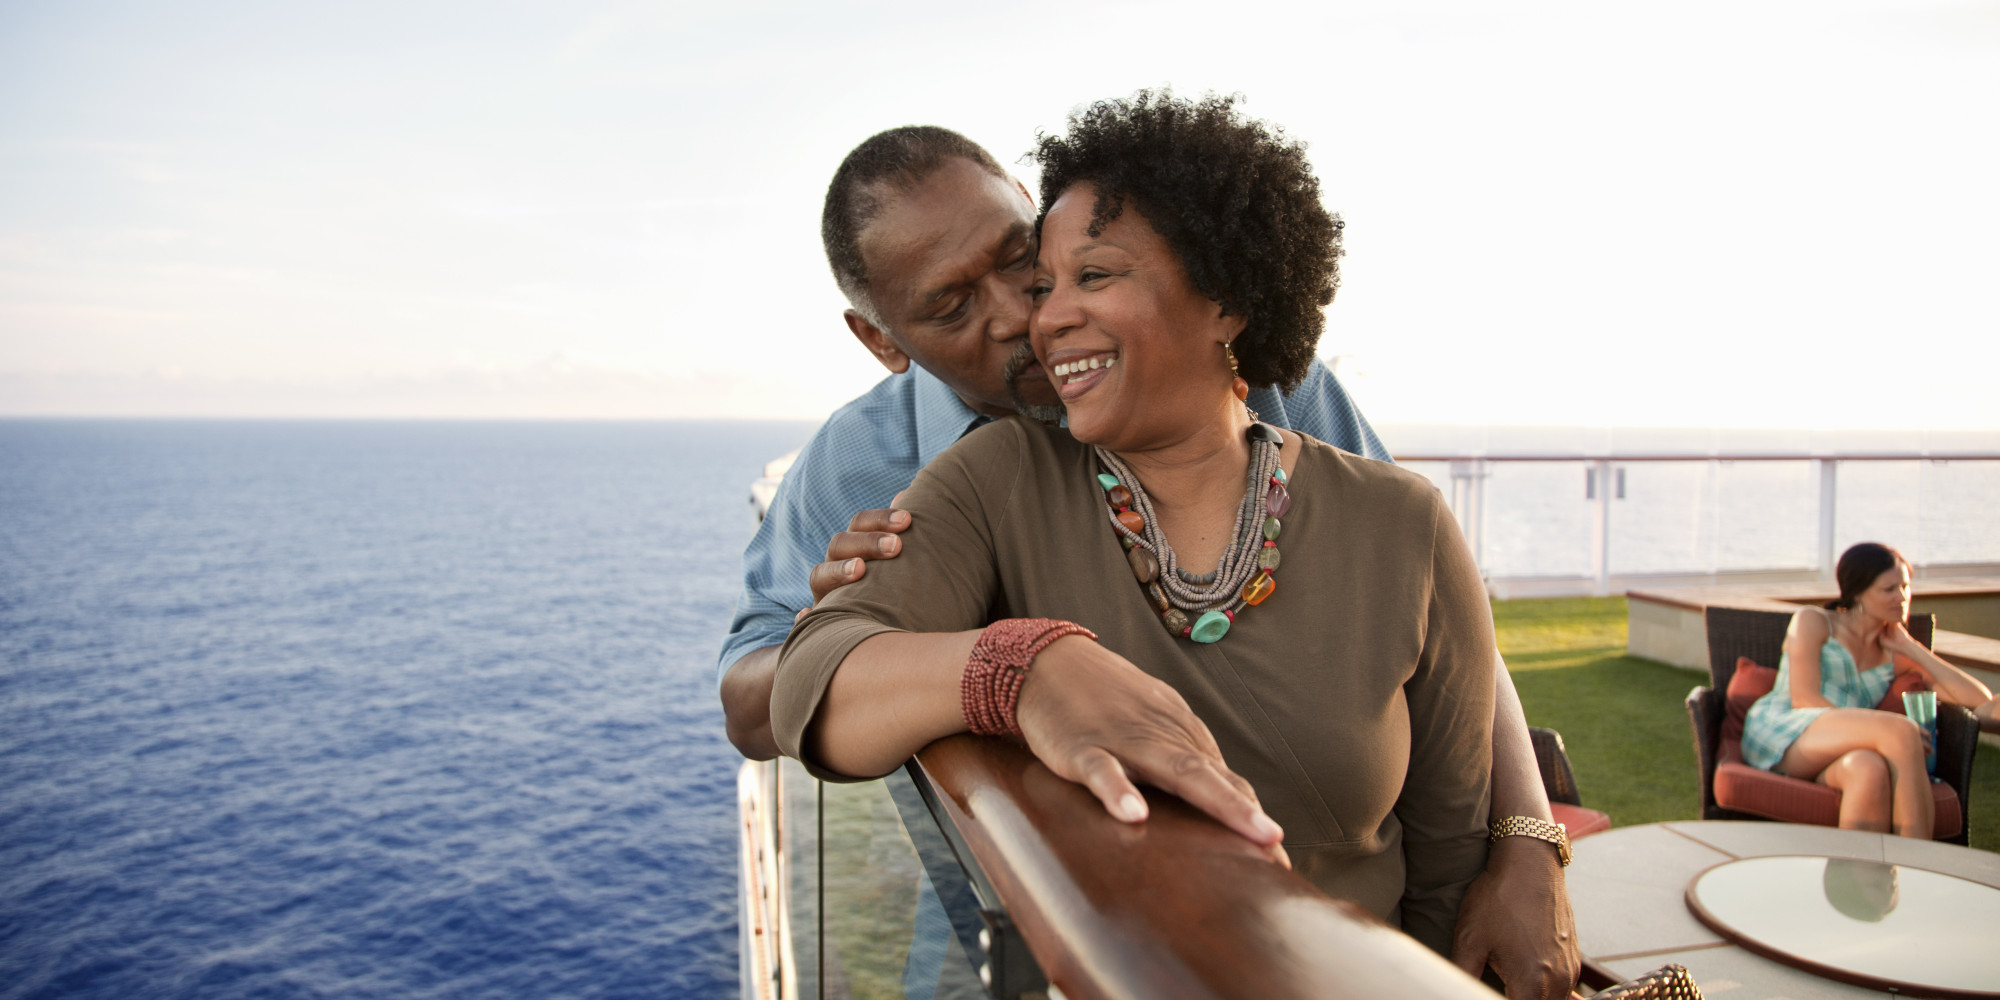 Top Crazy Cruise Tips For Baby Boomers HuffPost - Baby on cruise ship